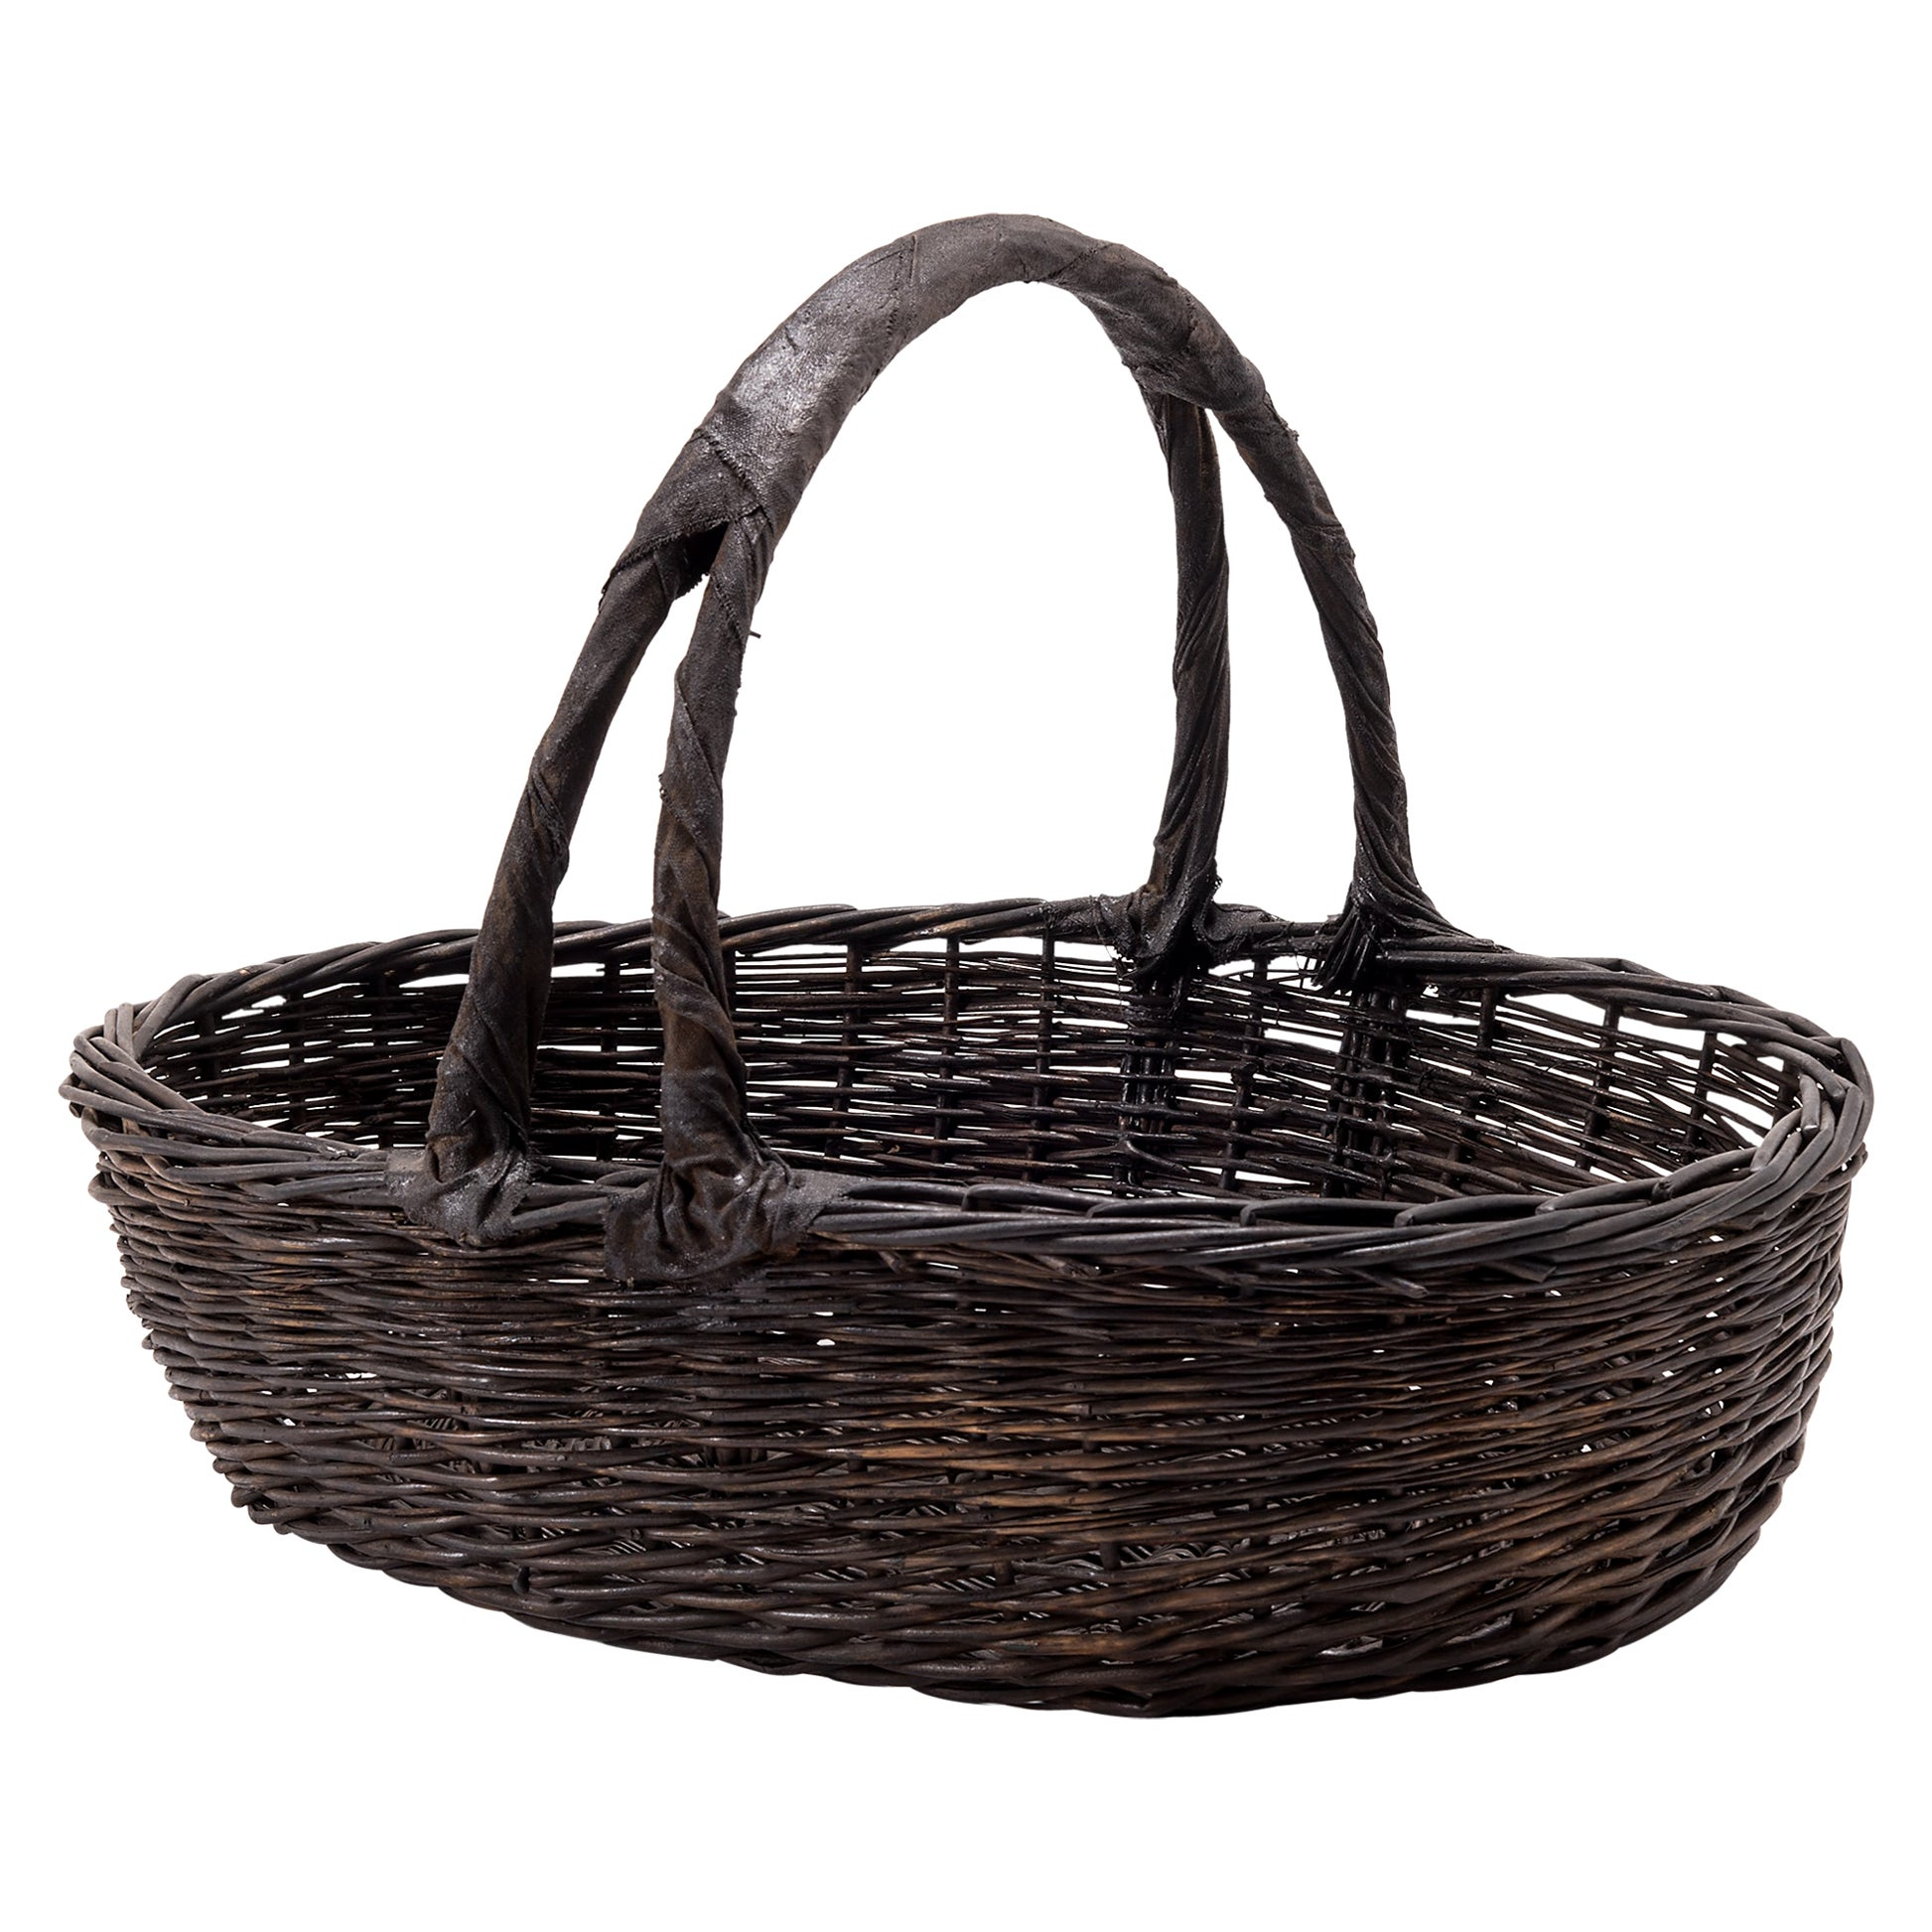 Vintage Chinese Woven Vegetable Basket